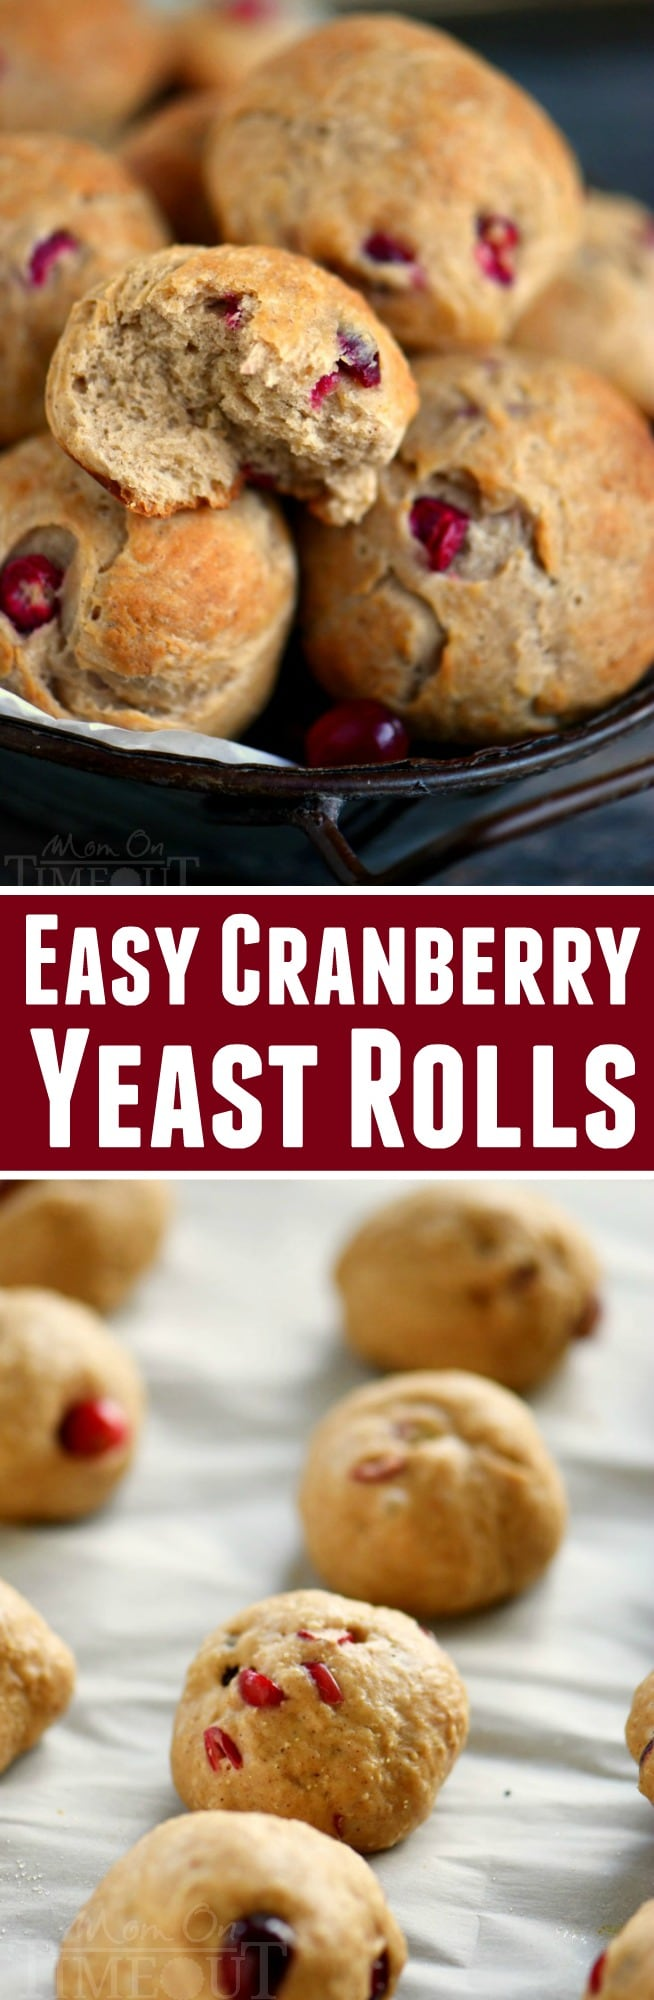 These Easy Cranberry Yeast Rolls are the perfect addition to your holiday meal! Packed with fresh cranberries and seasoned with pumpkin pie spice, it's a winning combination that is sure to please. They can even be made ahead of time!